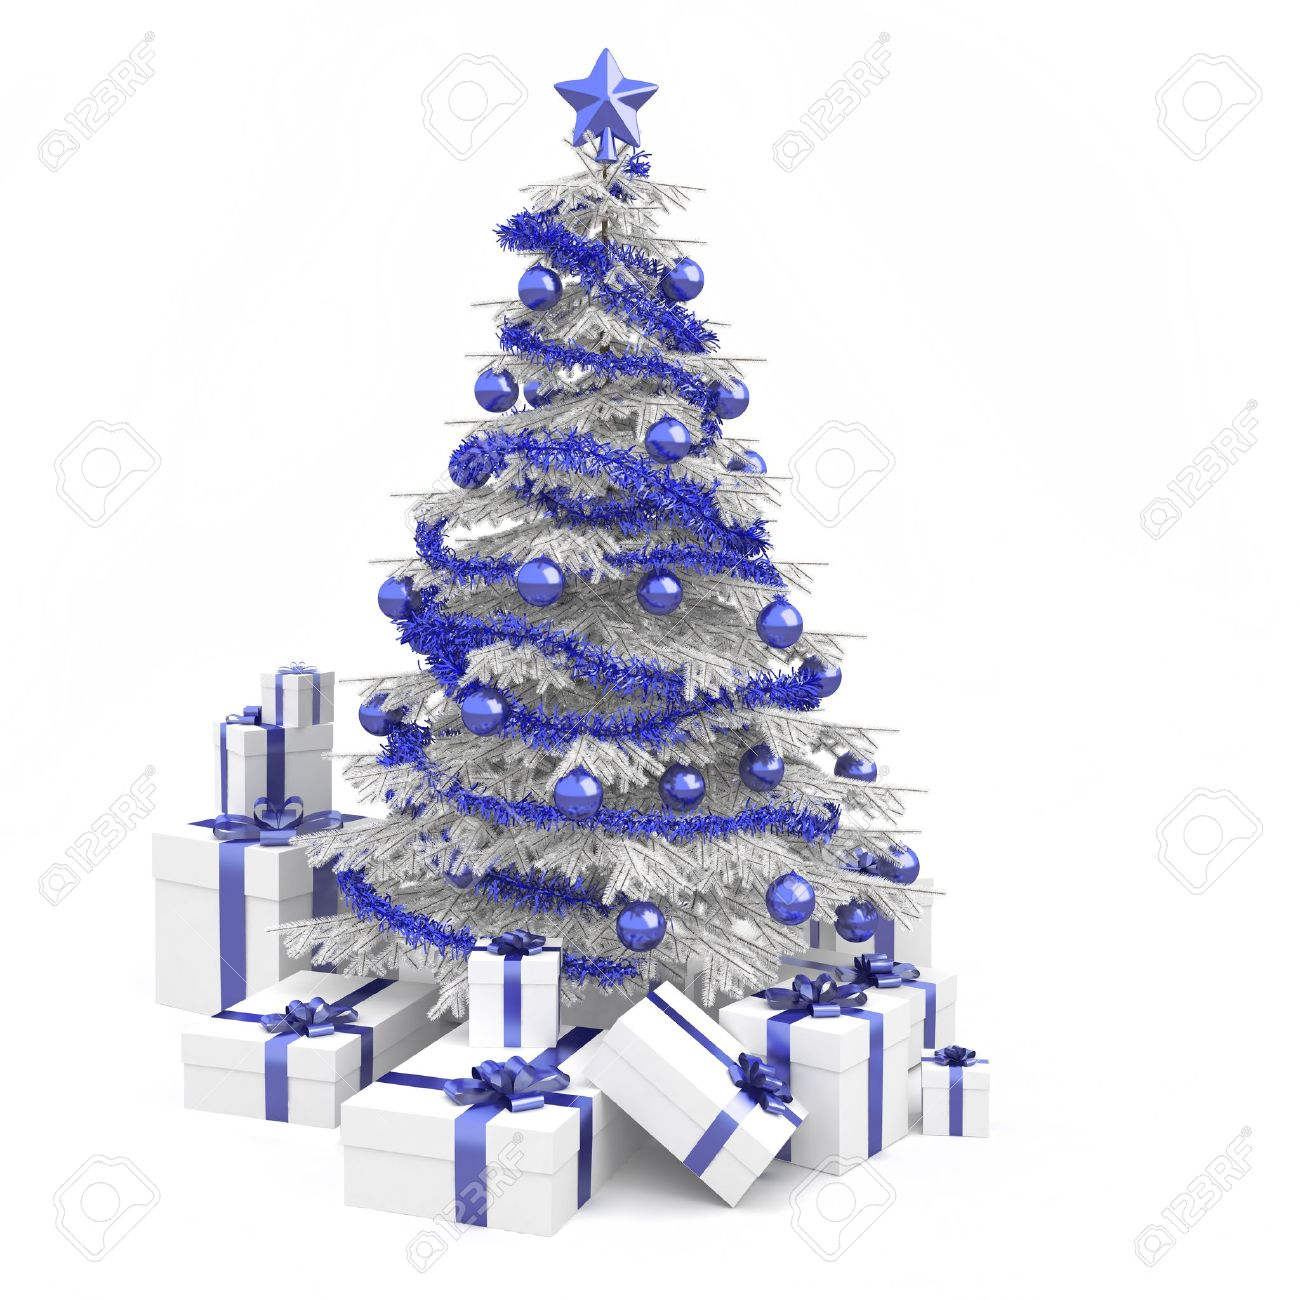 fully decorated christmas tree in blue and white colors with many presents and isolated on white